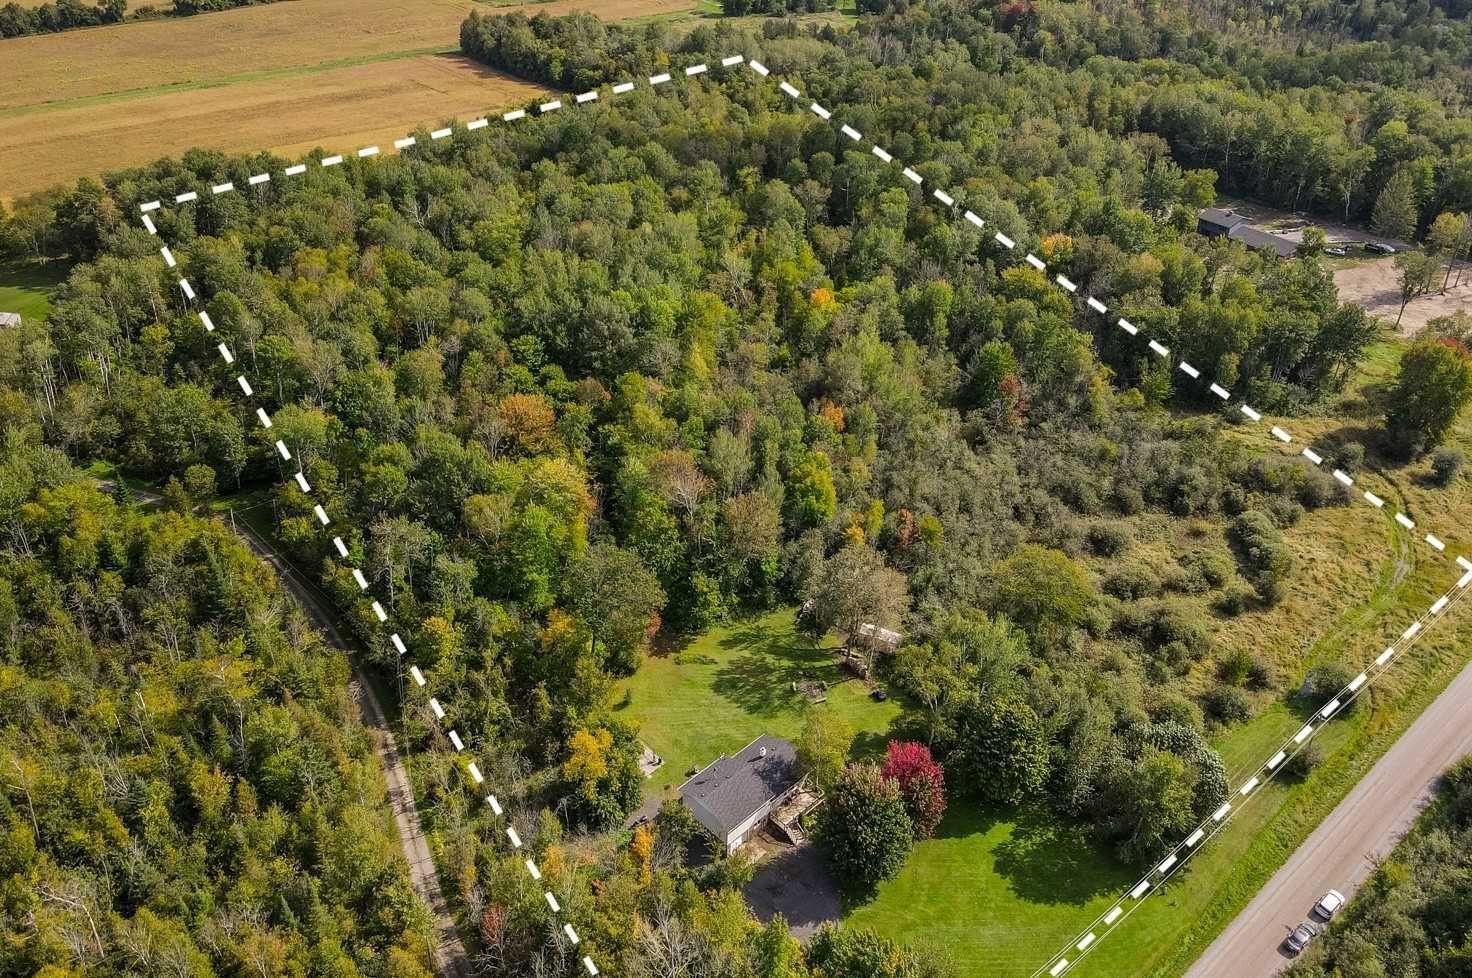 Main Photo: 19375 Mississaugas Trail Road in Scugog: Port Perry House (Sidesplit 4) for sale : MLS®# E5386585